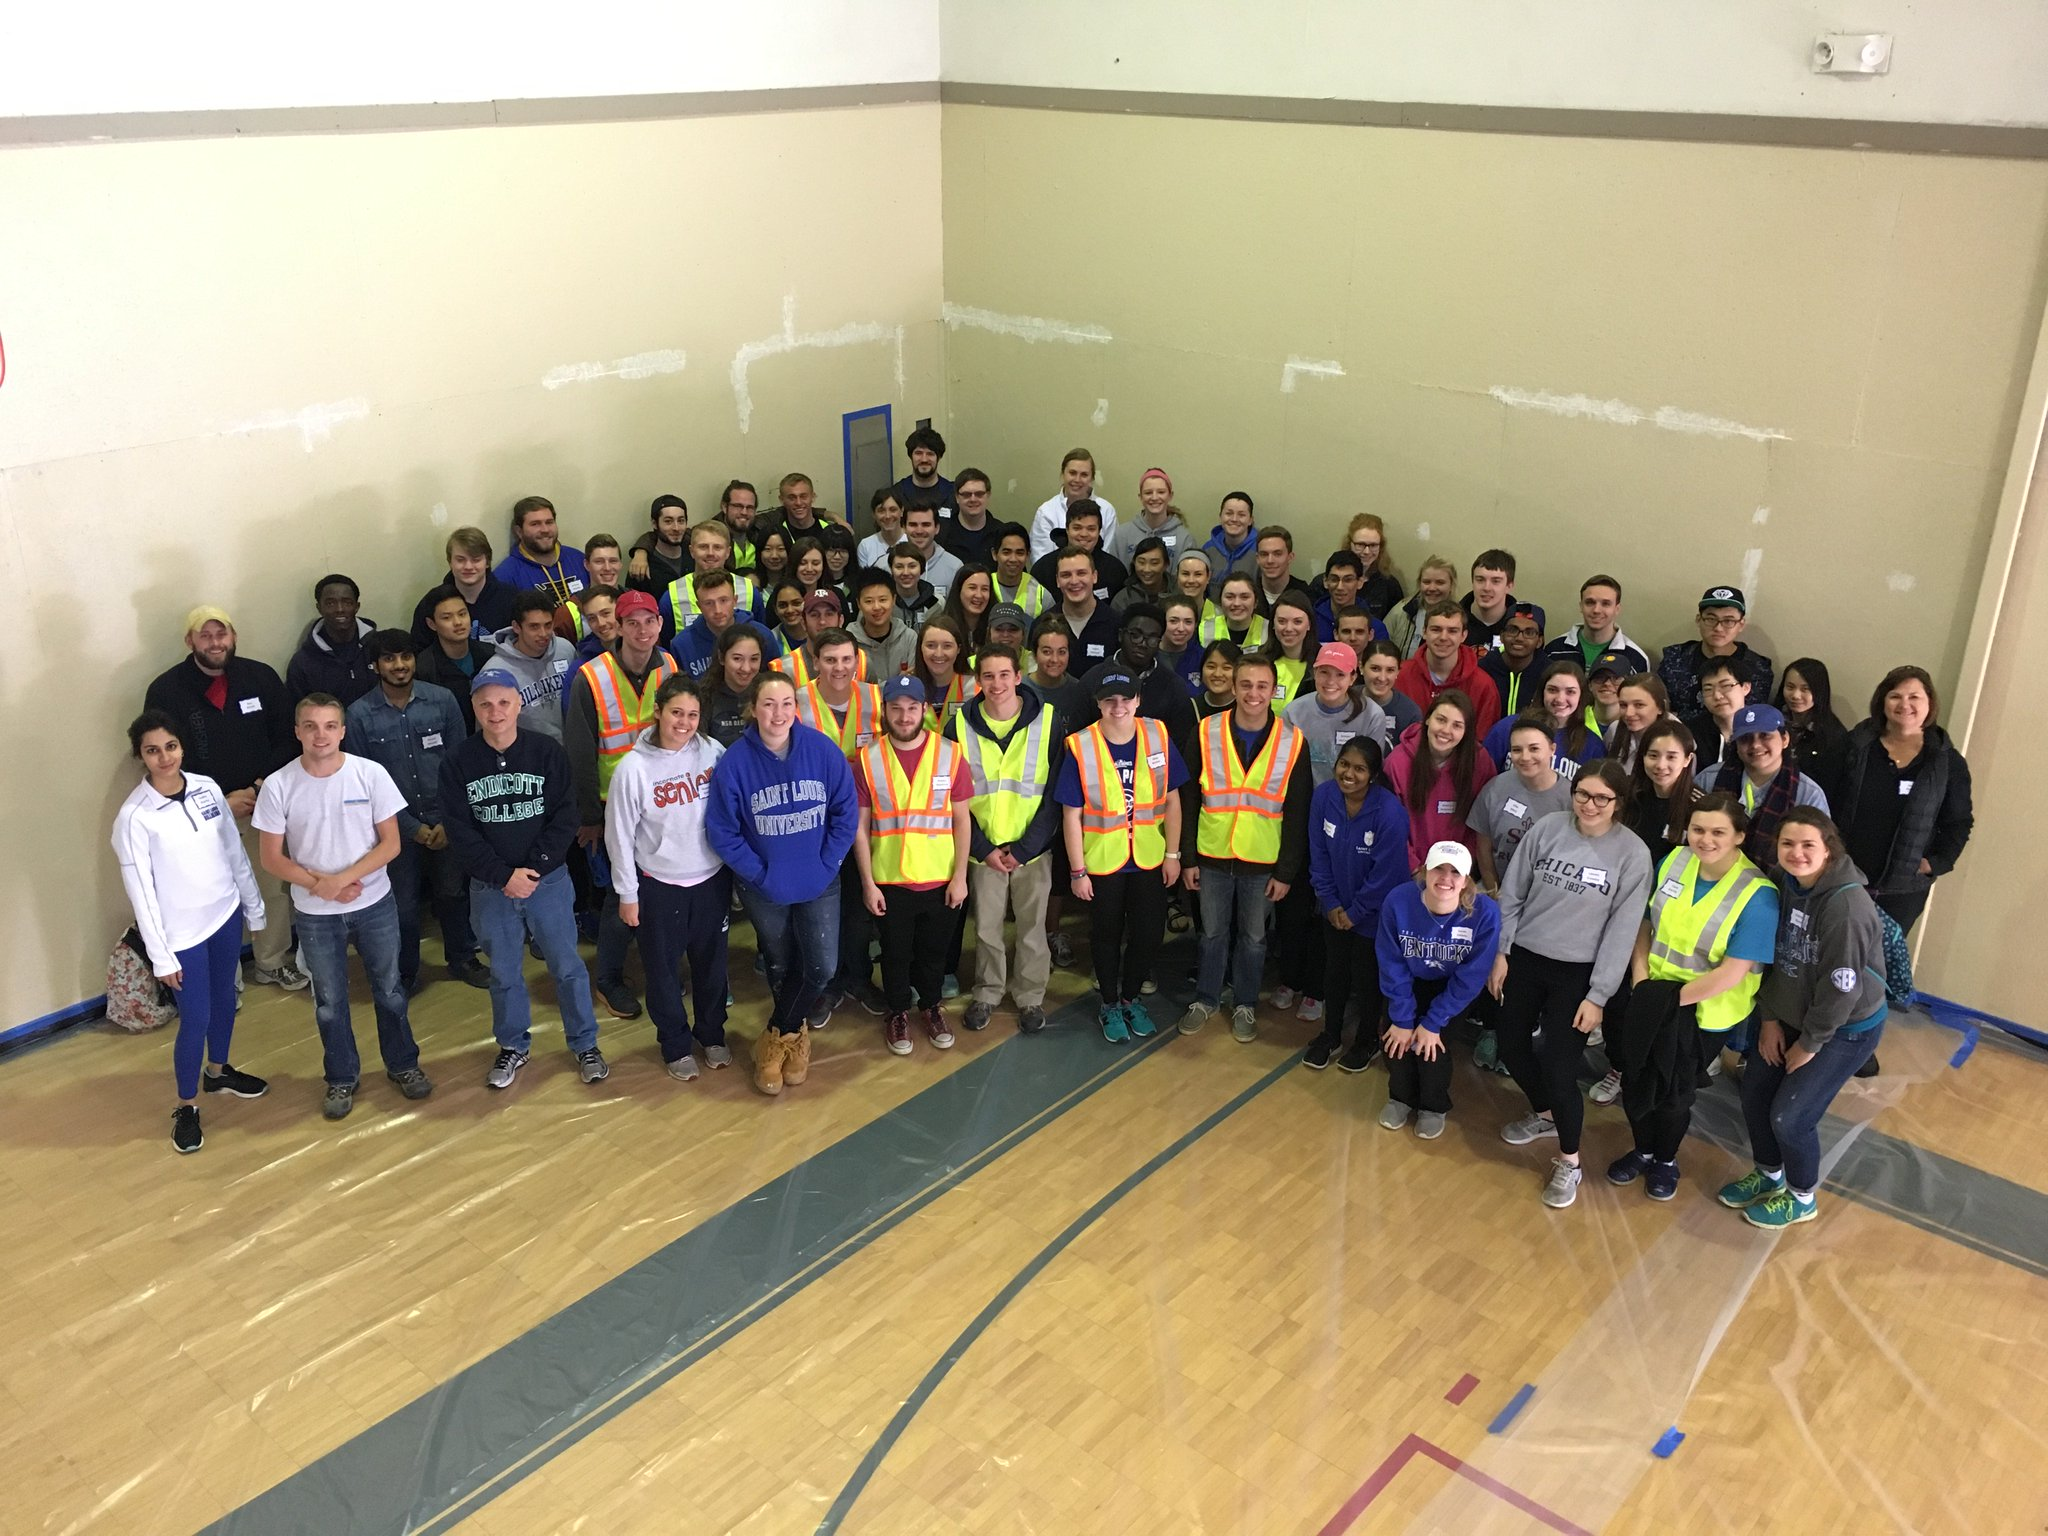 Cook School of Business Service Day is underway! Thank you for joining us today! #ServiceDay https://t.co/4dUDXnDhM8